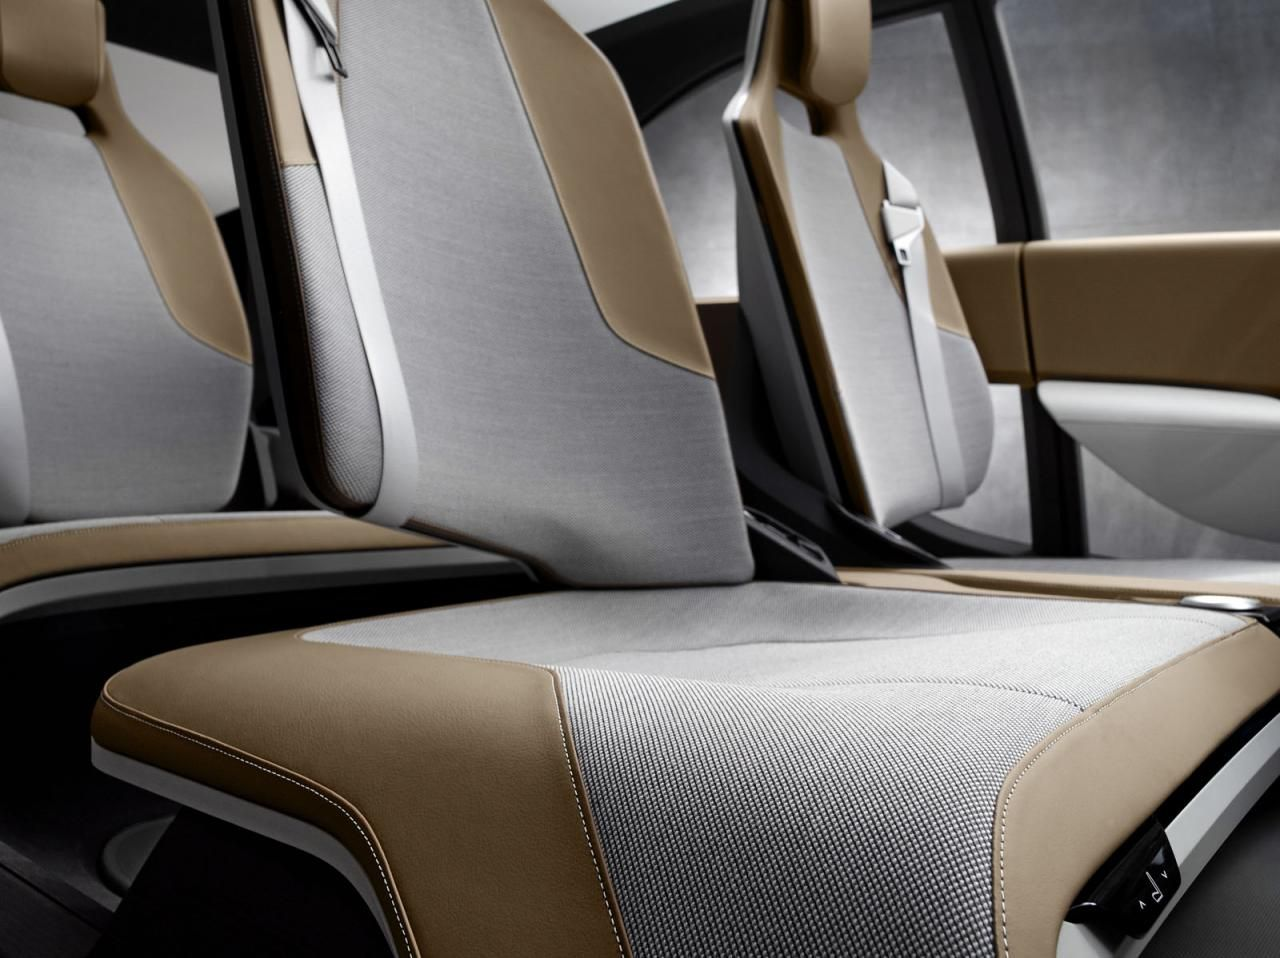 Leather cushion texture - Bmw I3 Concept Interior Fabric Texture Leather Brown Grey Comfort Car Seat Cushion Flow Modern